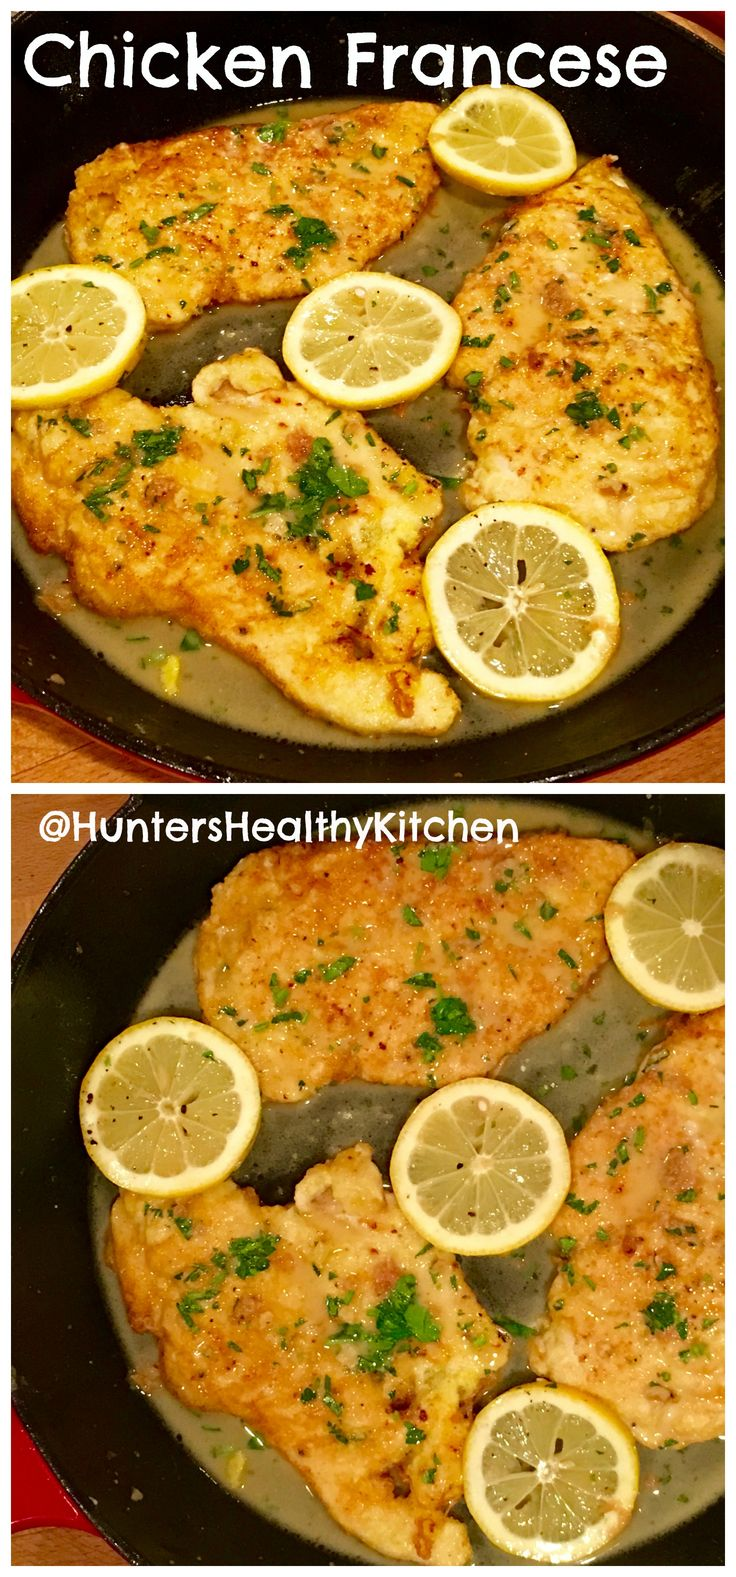 Lemony Italian Chicken Francese with fresh parsley. This is a quick and easy week night recipe that packs big flavor! ~No Wine Necessary See the recipe | Hunters Healthy Kitchen | #ChickenFrancese #LemonChicken